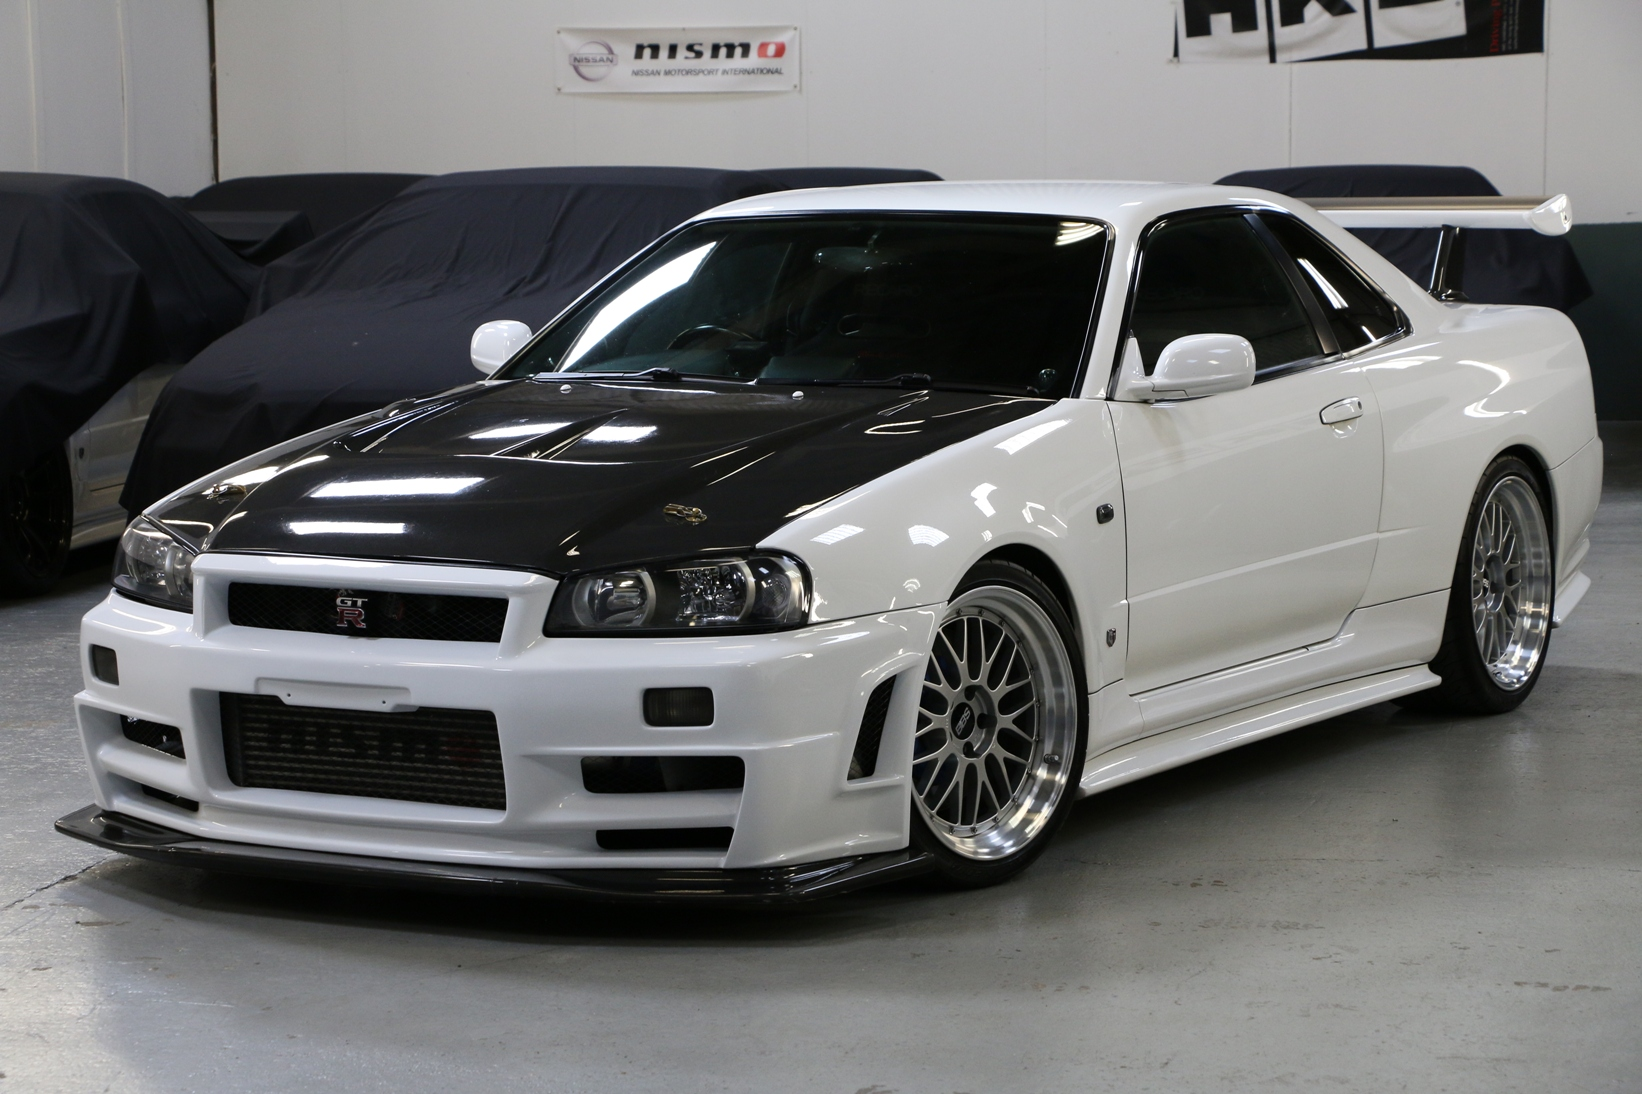 Nissan Skyline R34 GT-R tuned by Phoenix Power :: High